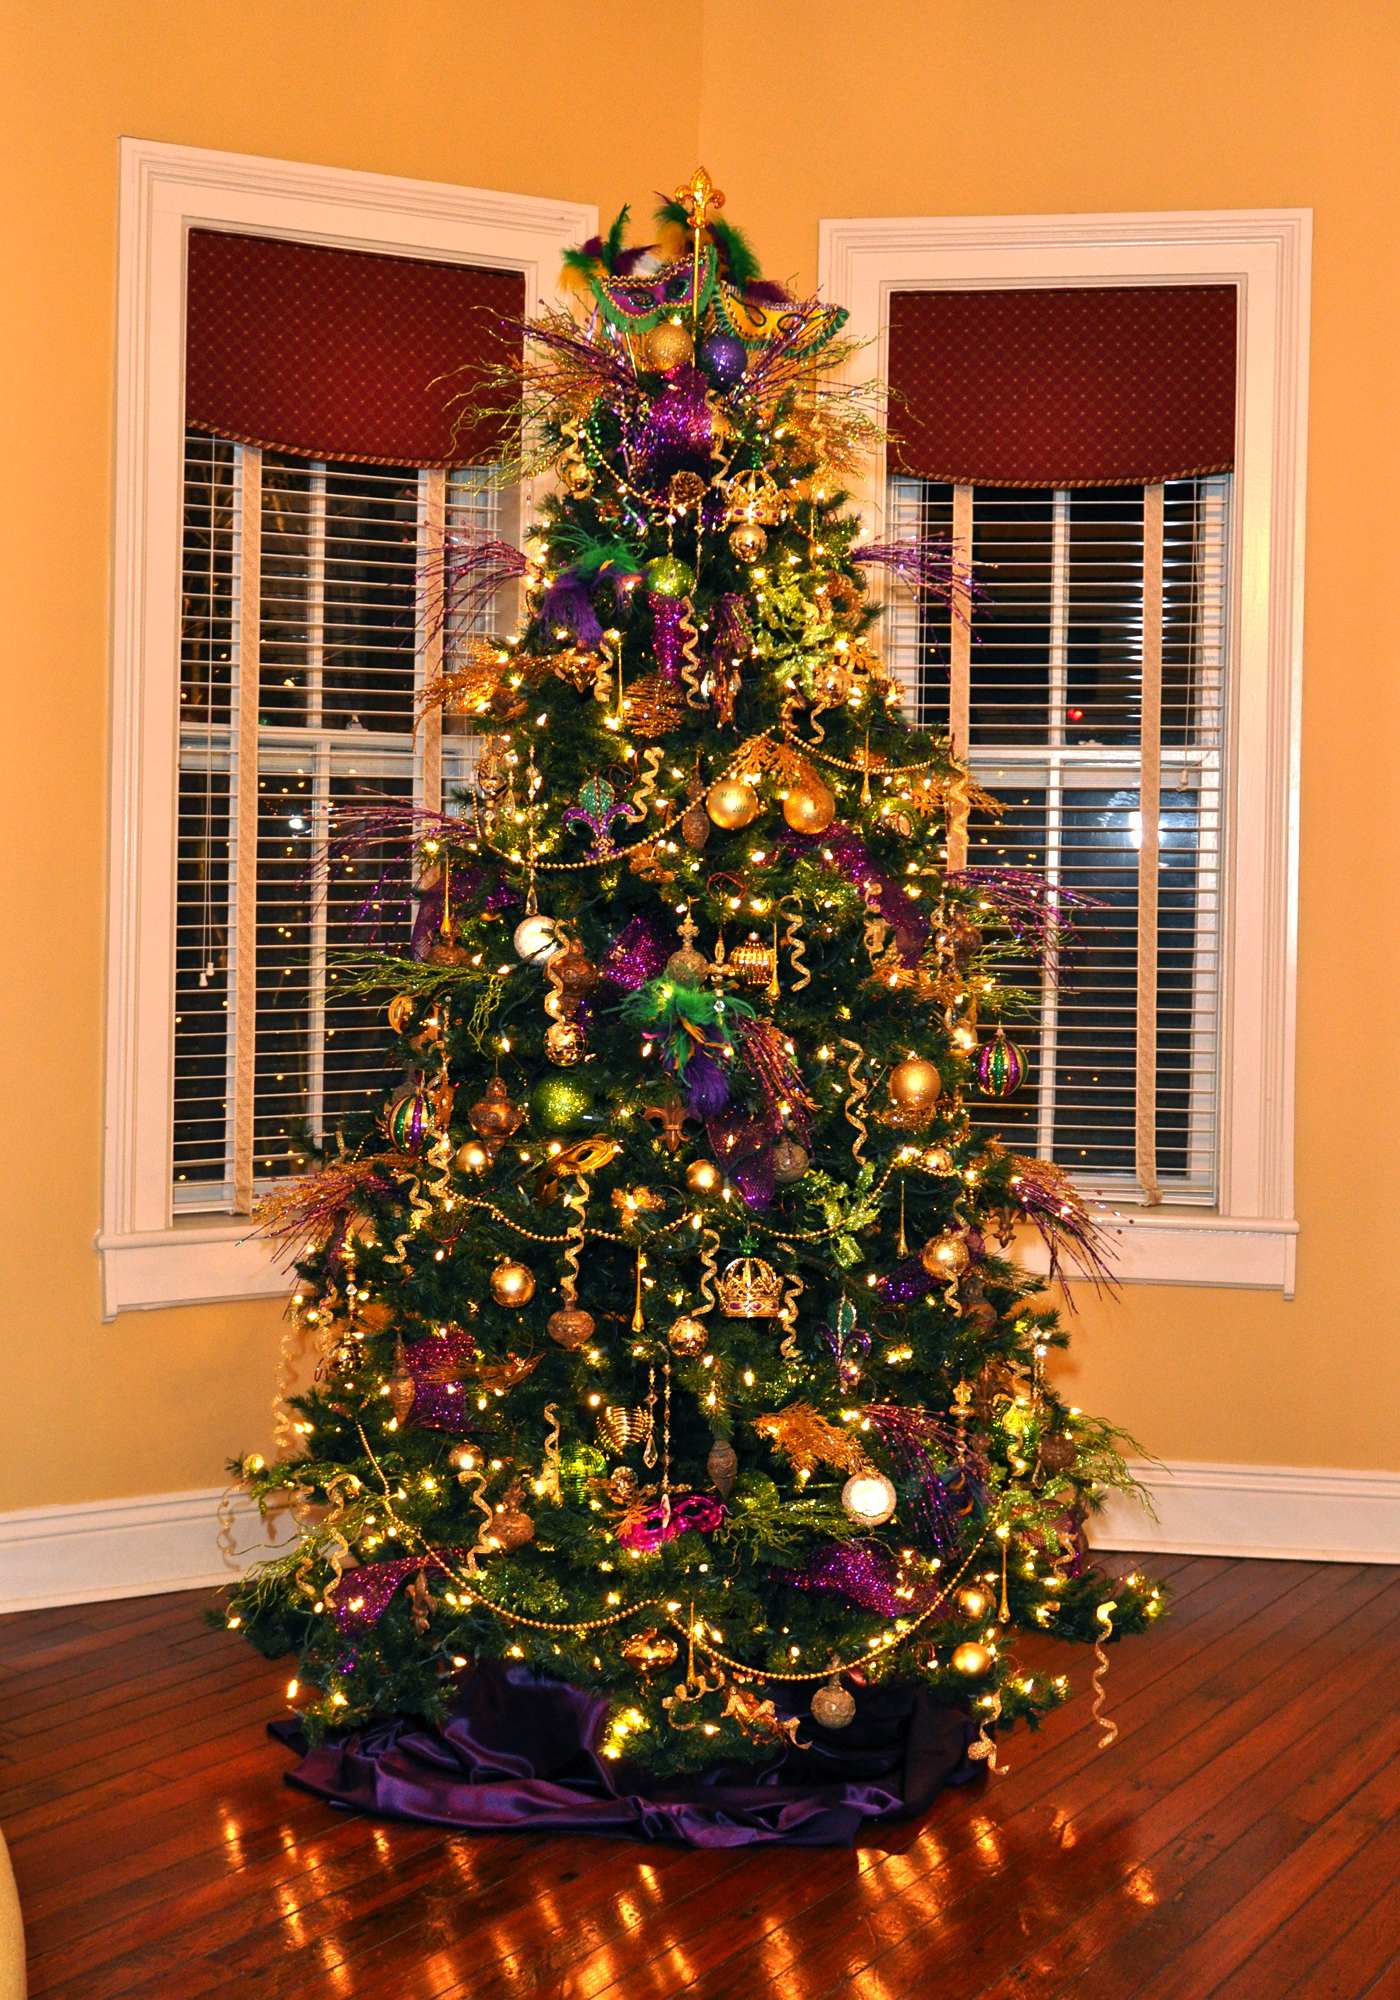 Who Decorated The First Christmas Tree